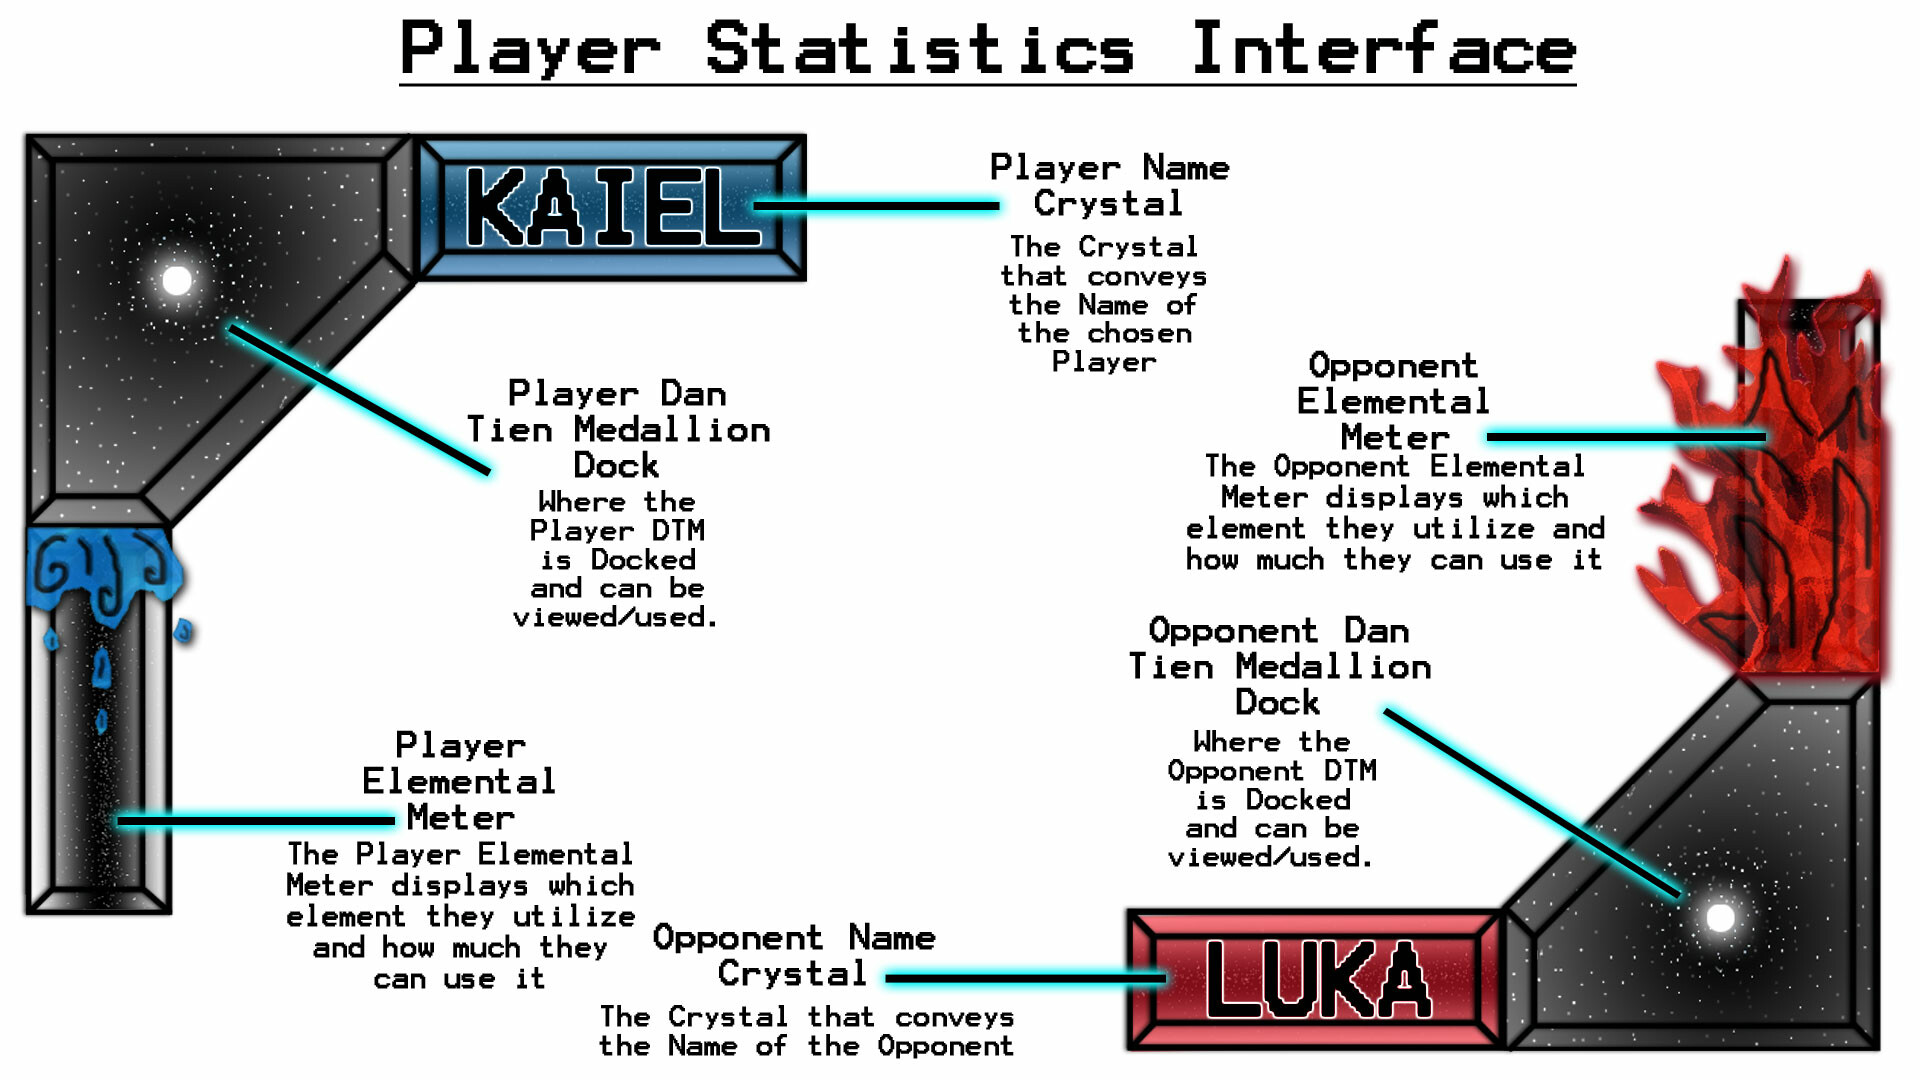 Explanation of the Player Stats Interface sprites